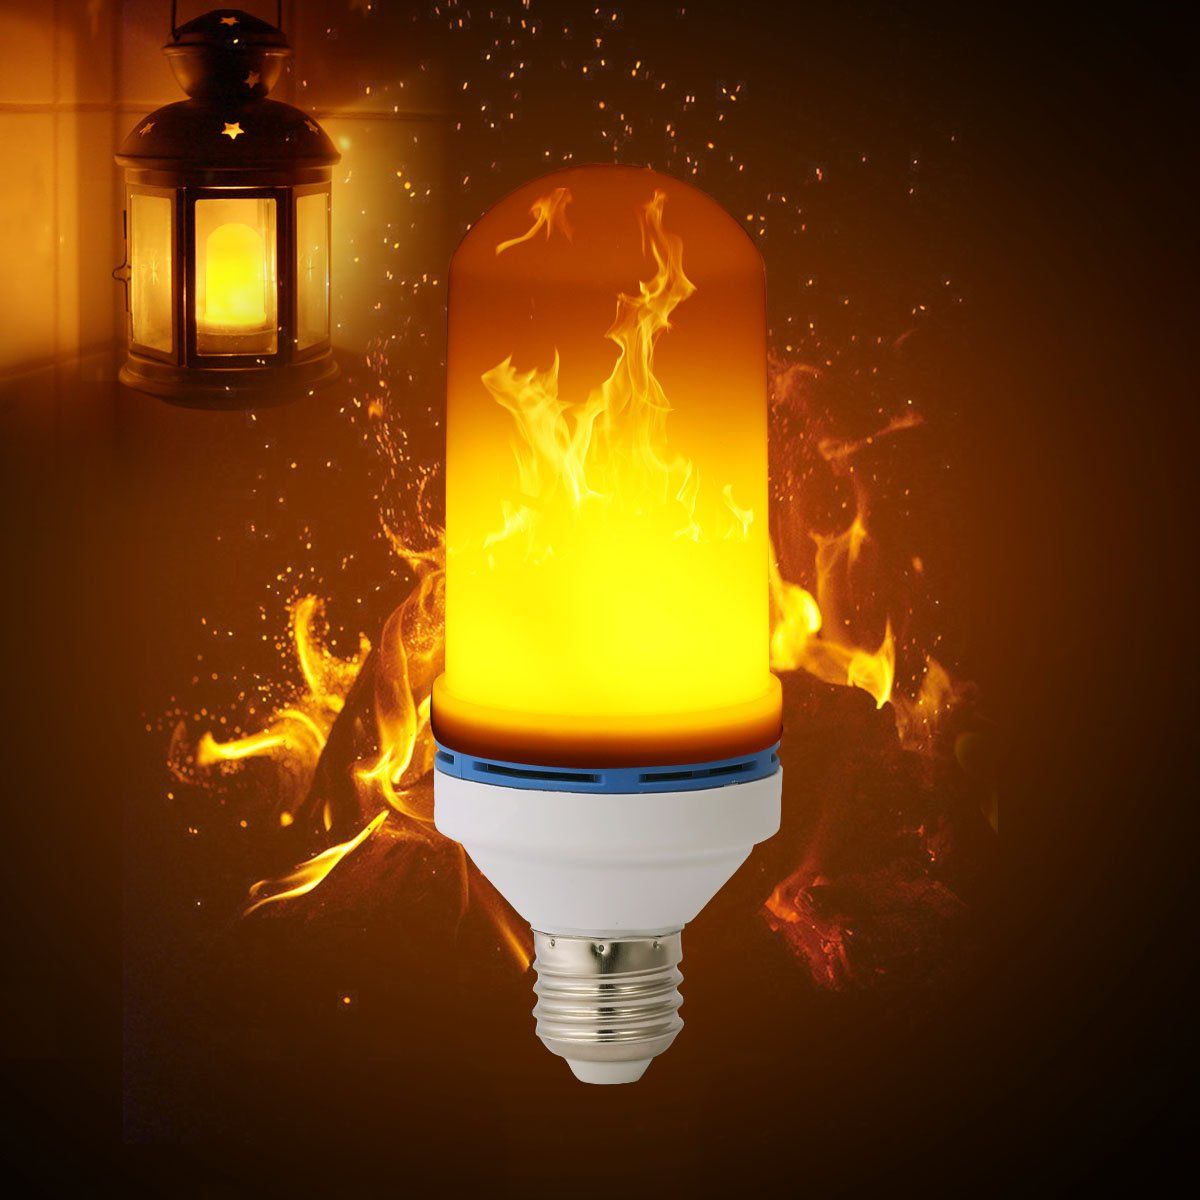 Flame bulblanmu flickering light bulboutdoor wall lightsexterior flame bulblanmu flickering light bulboutdoor wall lightsexterior wall lightsled flame effect light bulbs for outdoor wall lanternflickering fire bulb aloadofball Choice Image